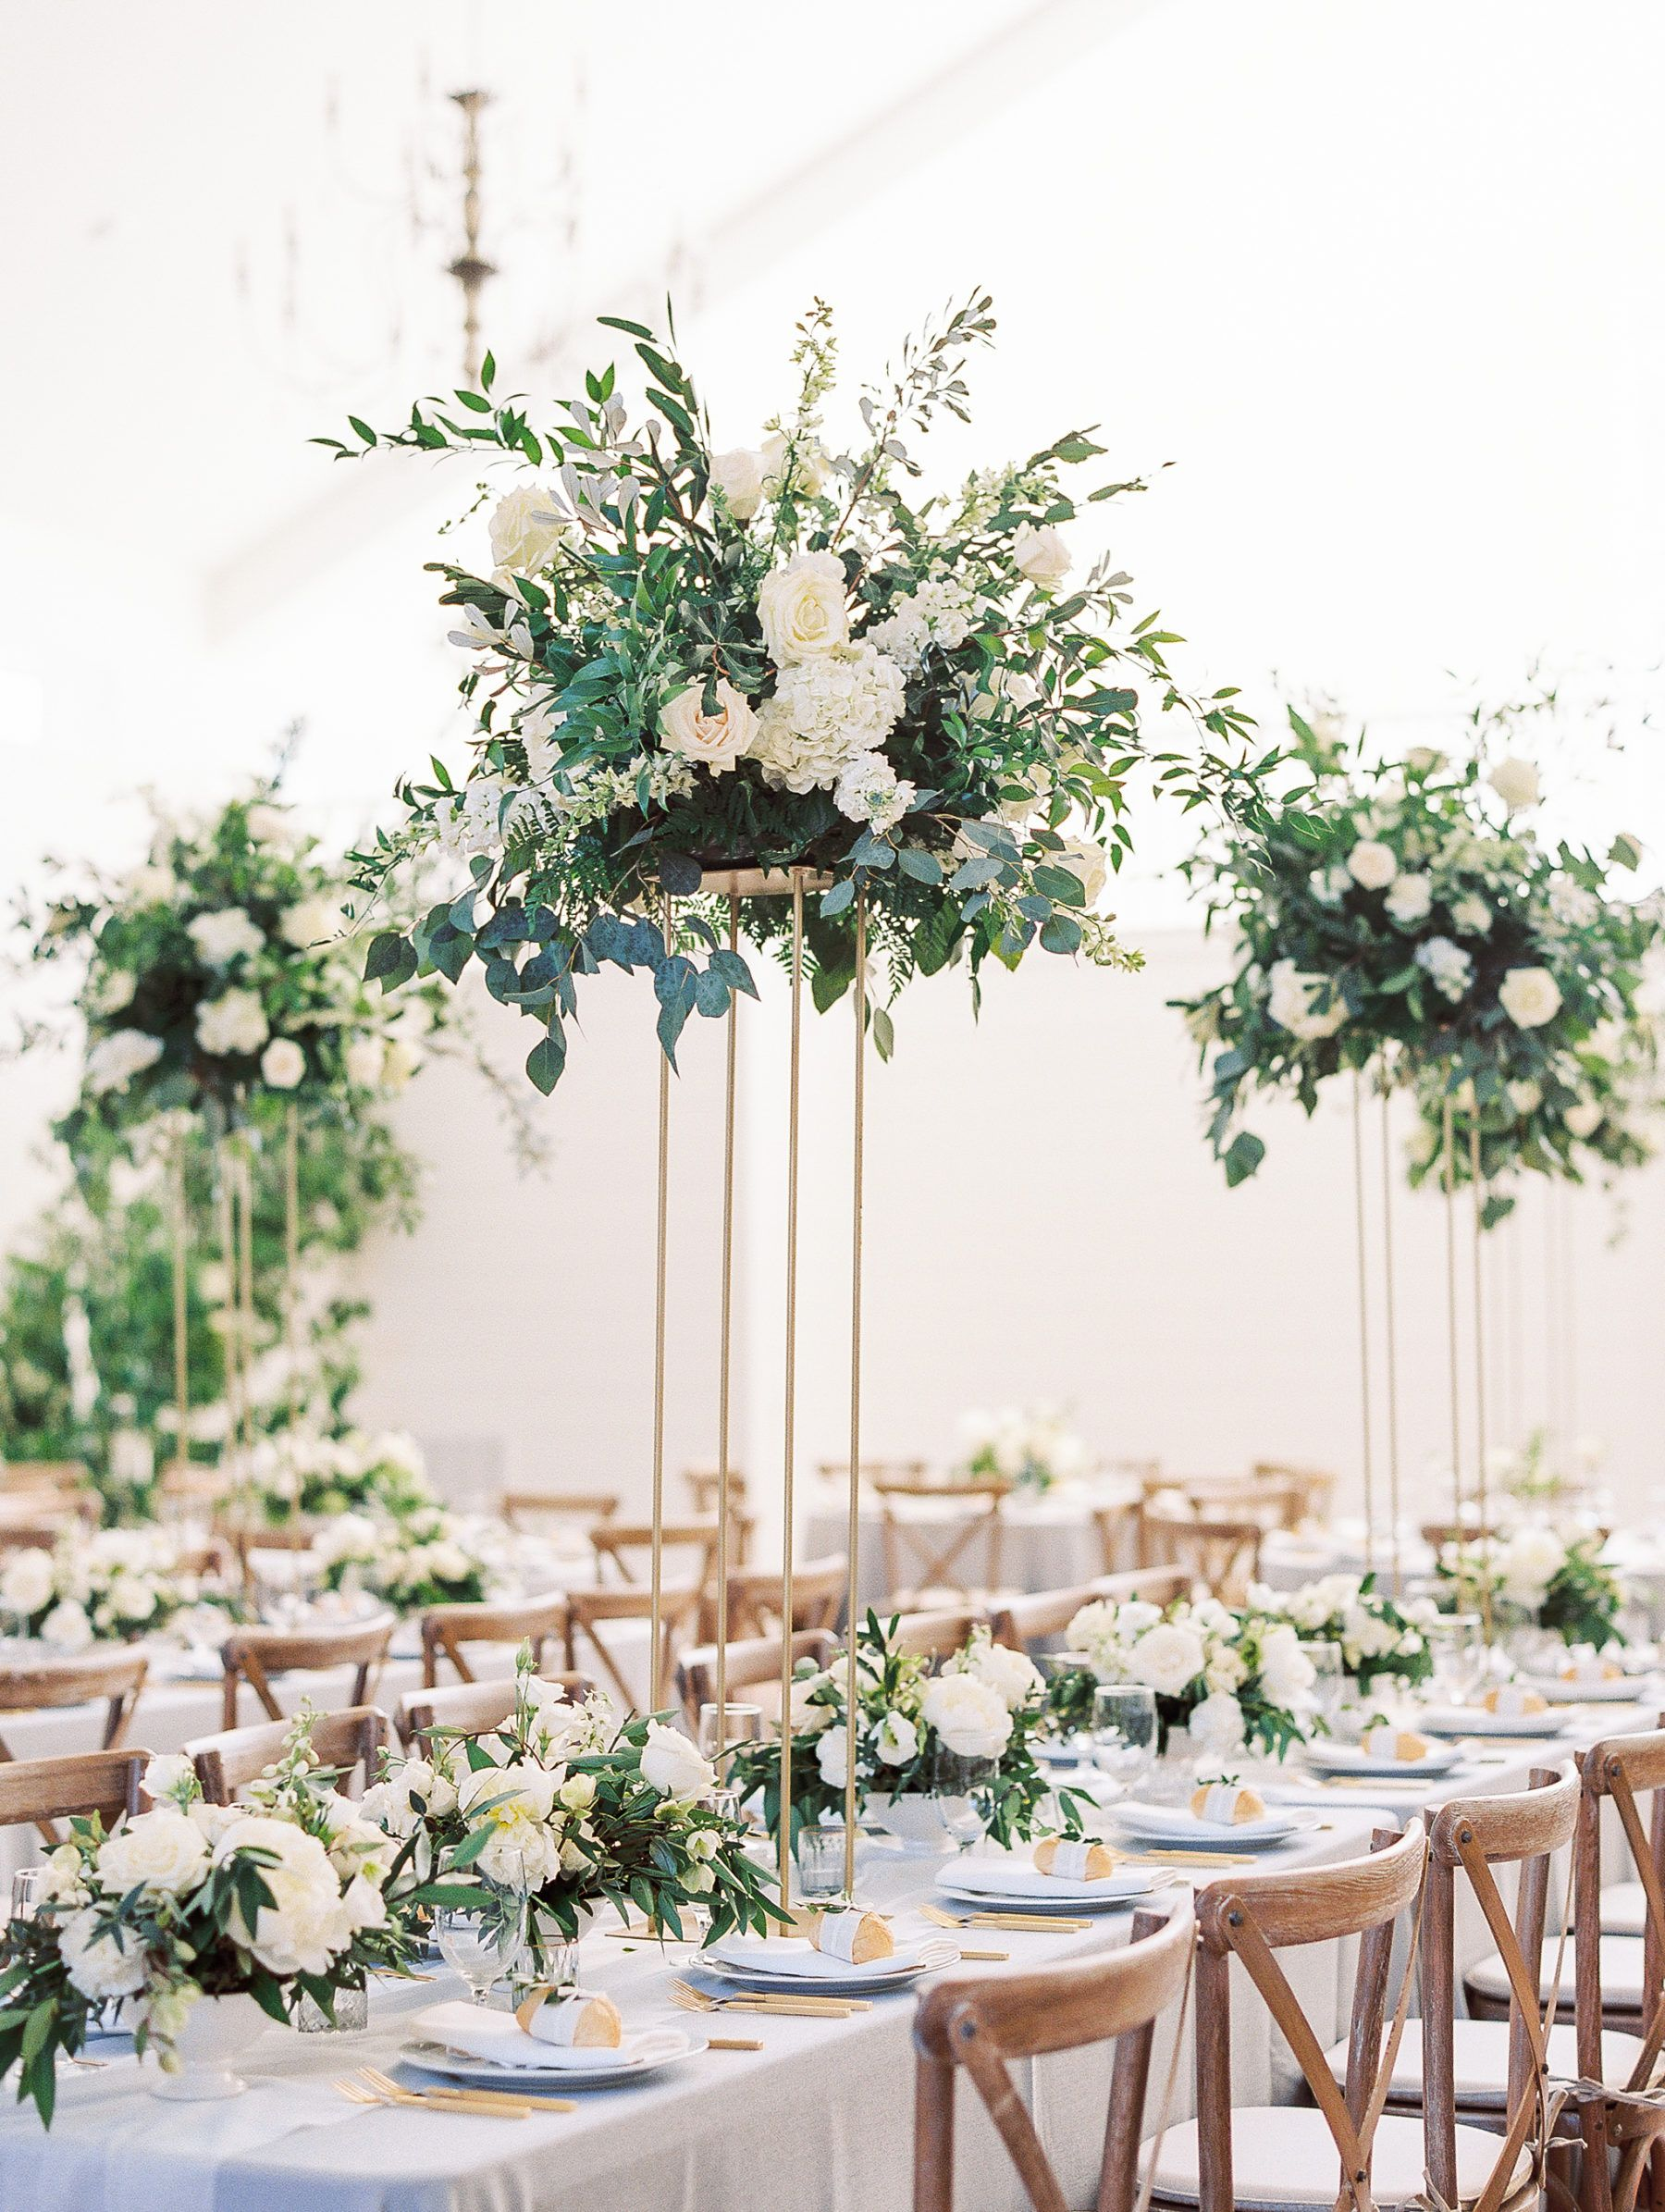 The Grandeur House Wedding with a Modern Farmhouse Style #modernfarmhousestyle